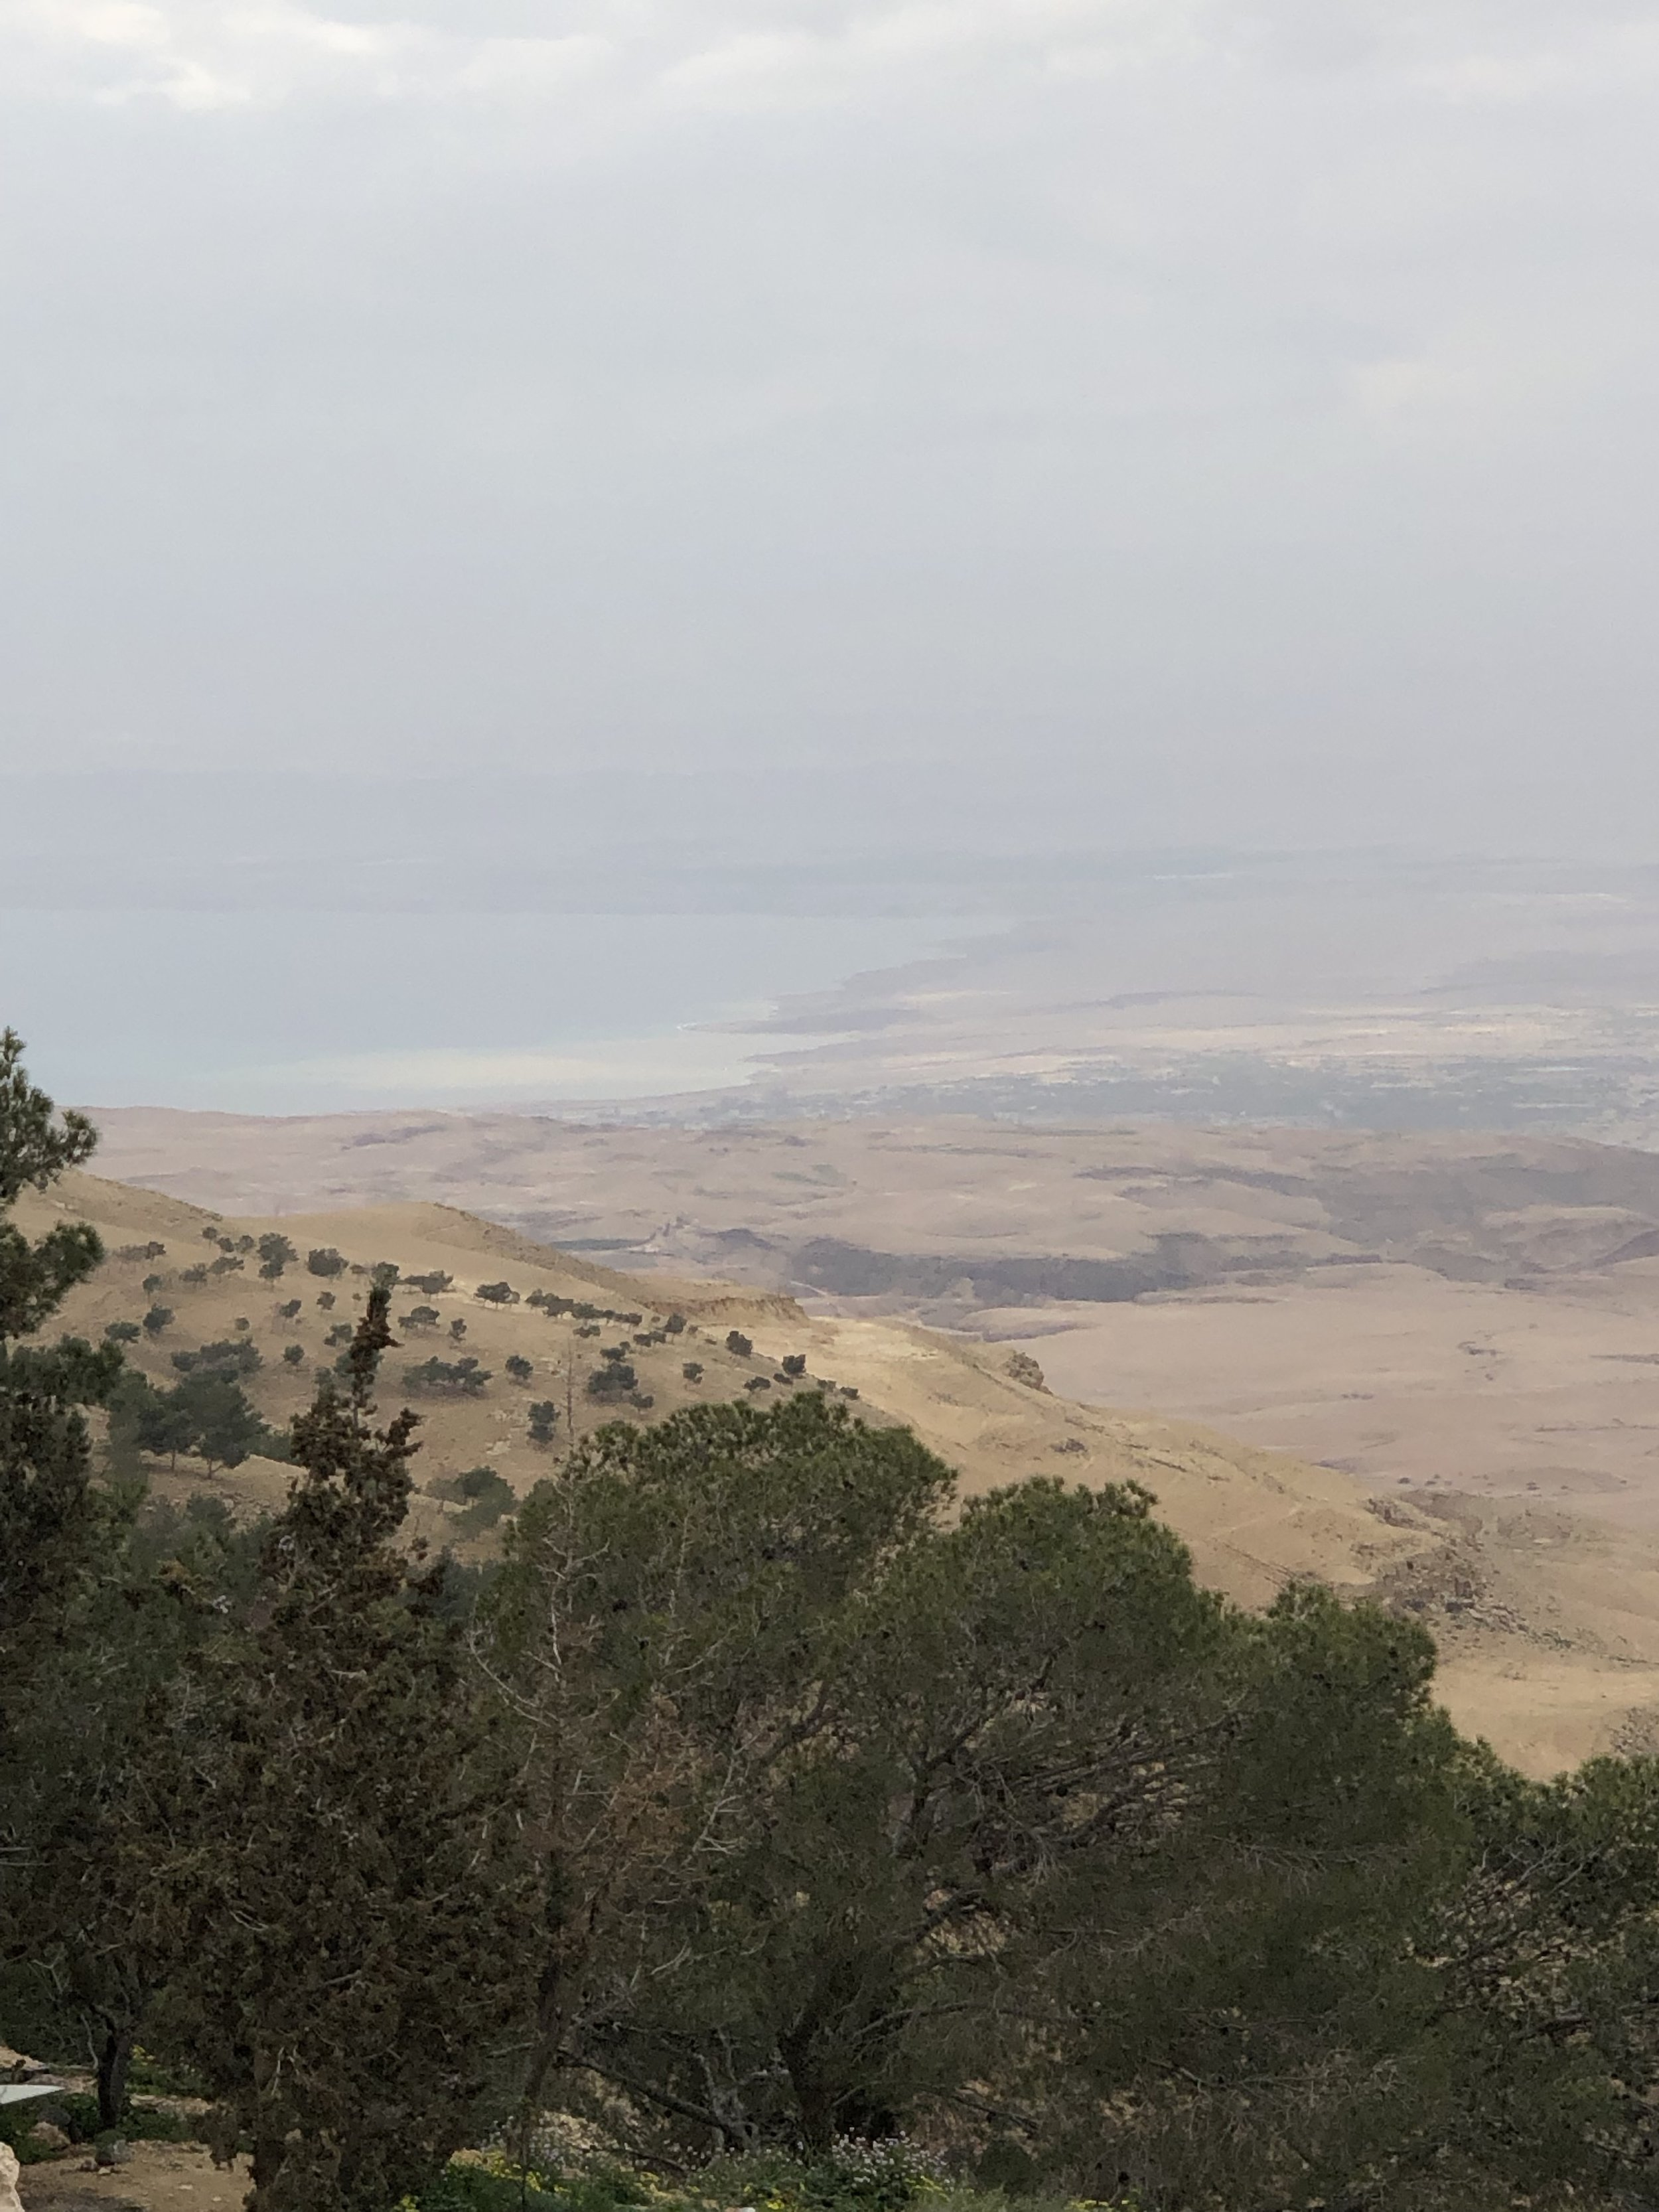 The Holy Land, from Mt. Nebo, Jordan